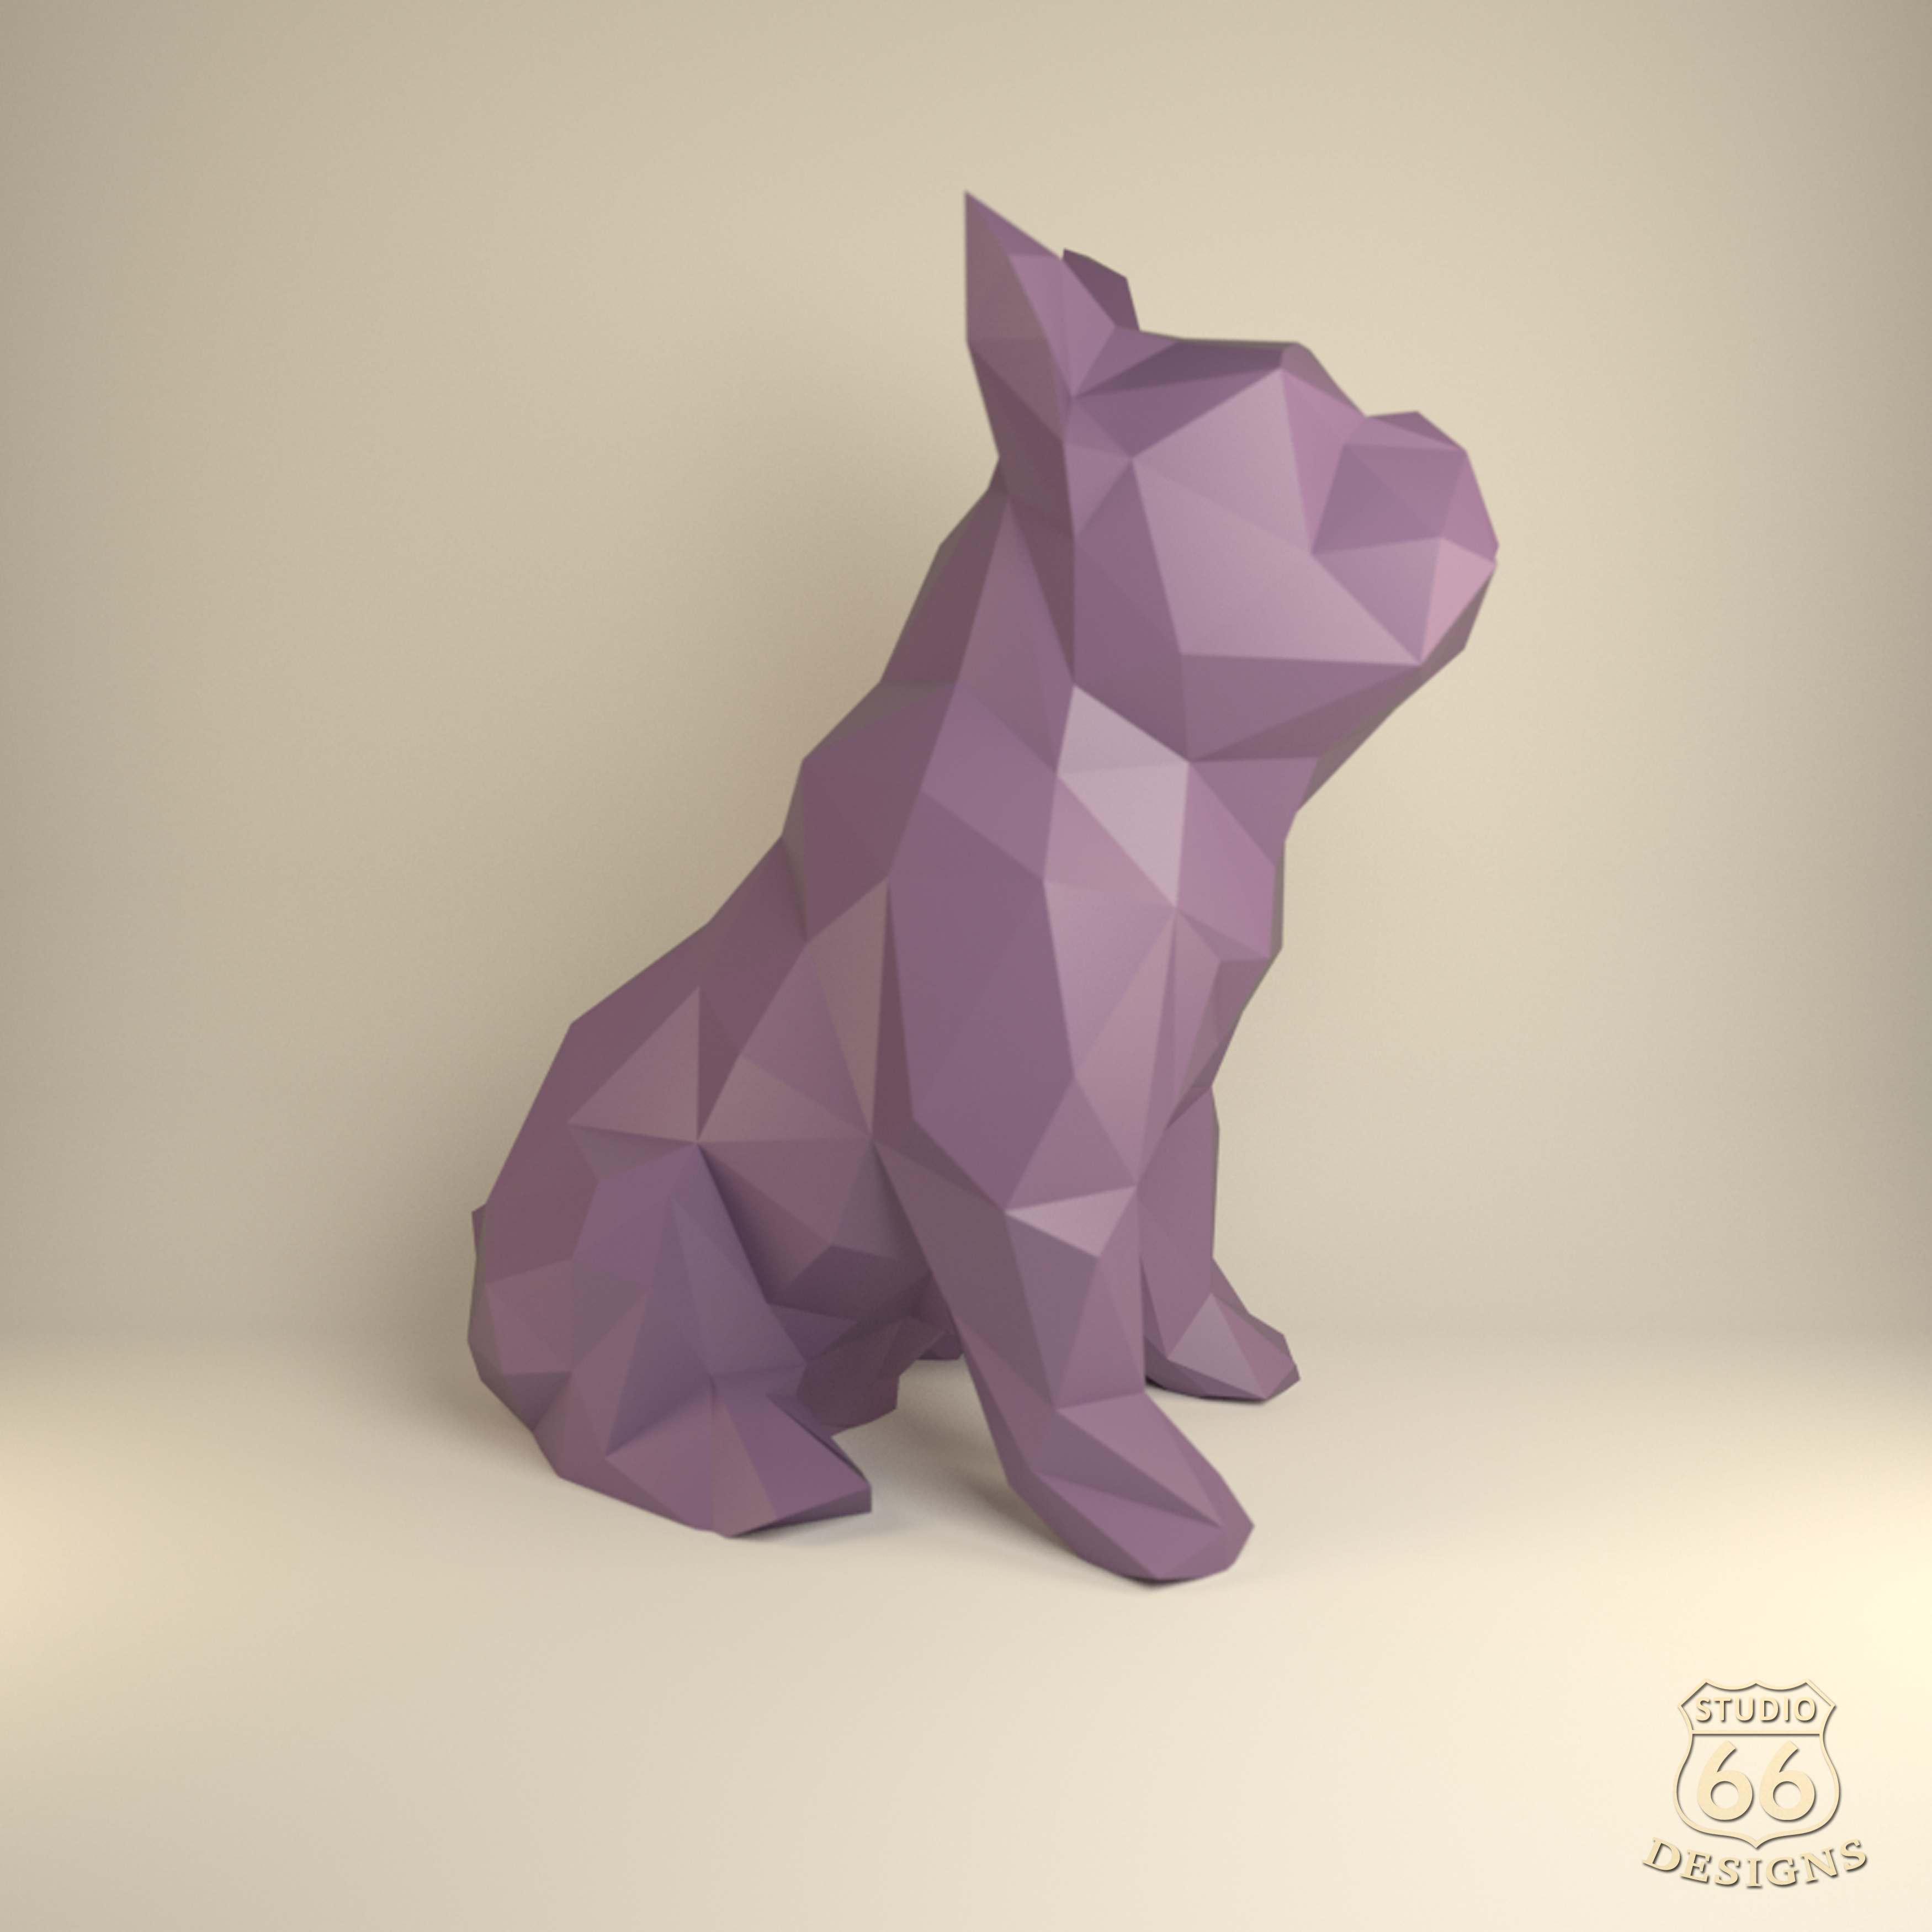 French Bulldog, Papercraft Bulldog, Paper Dog, Paper Animals, Papertoy, Home Decor, Frenchie, 3D papercraft model, lowpoly DIY, hobby idea example image 3